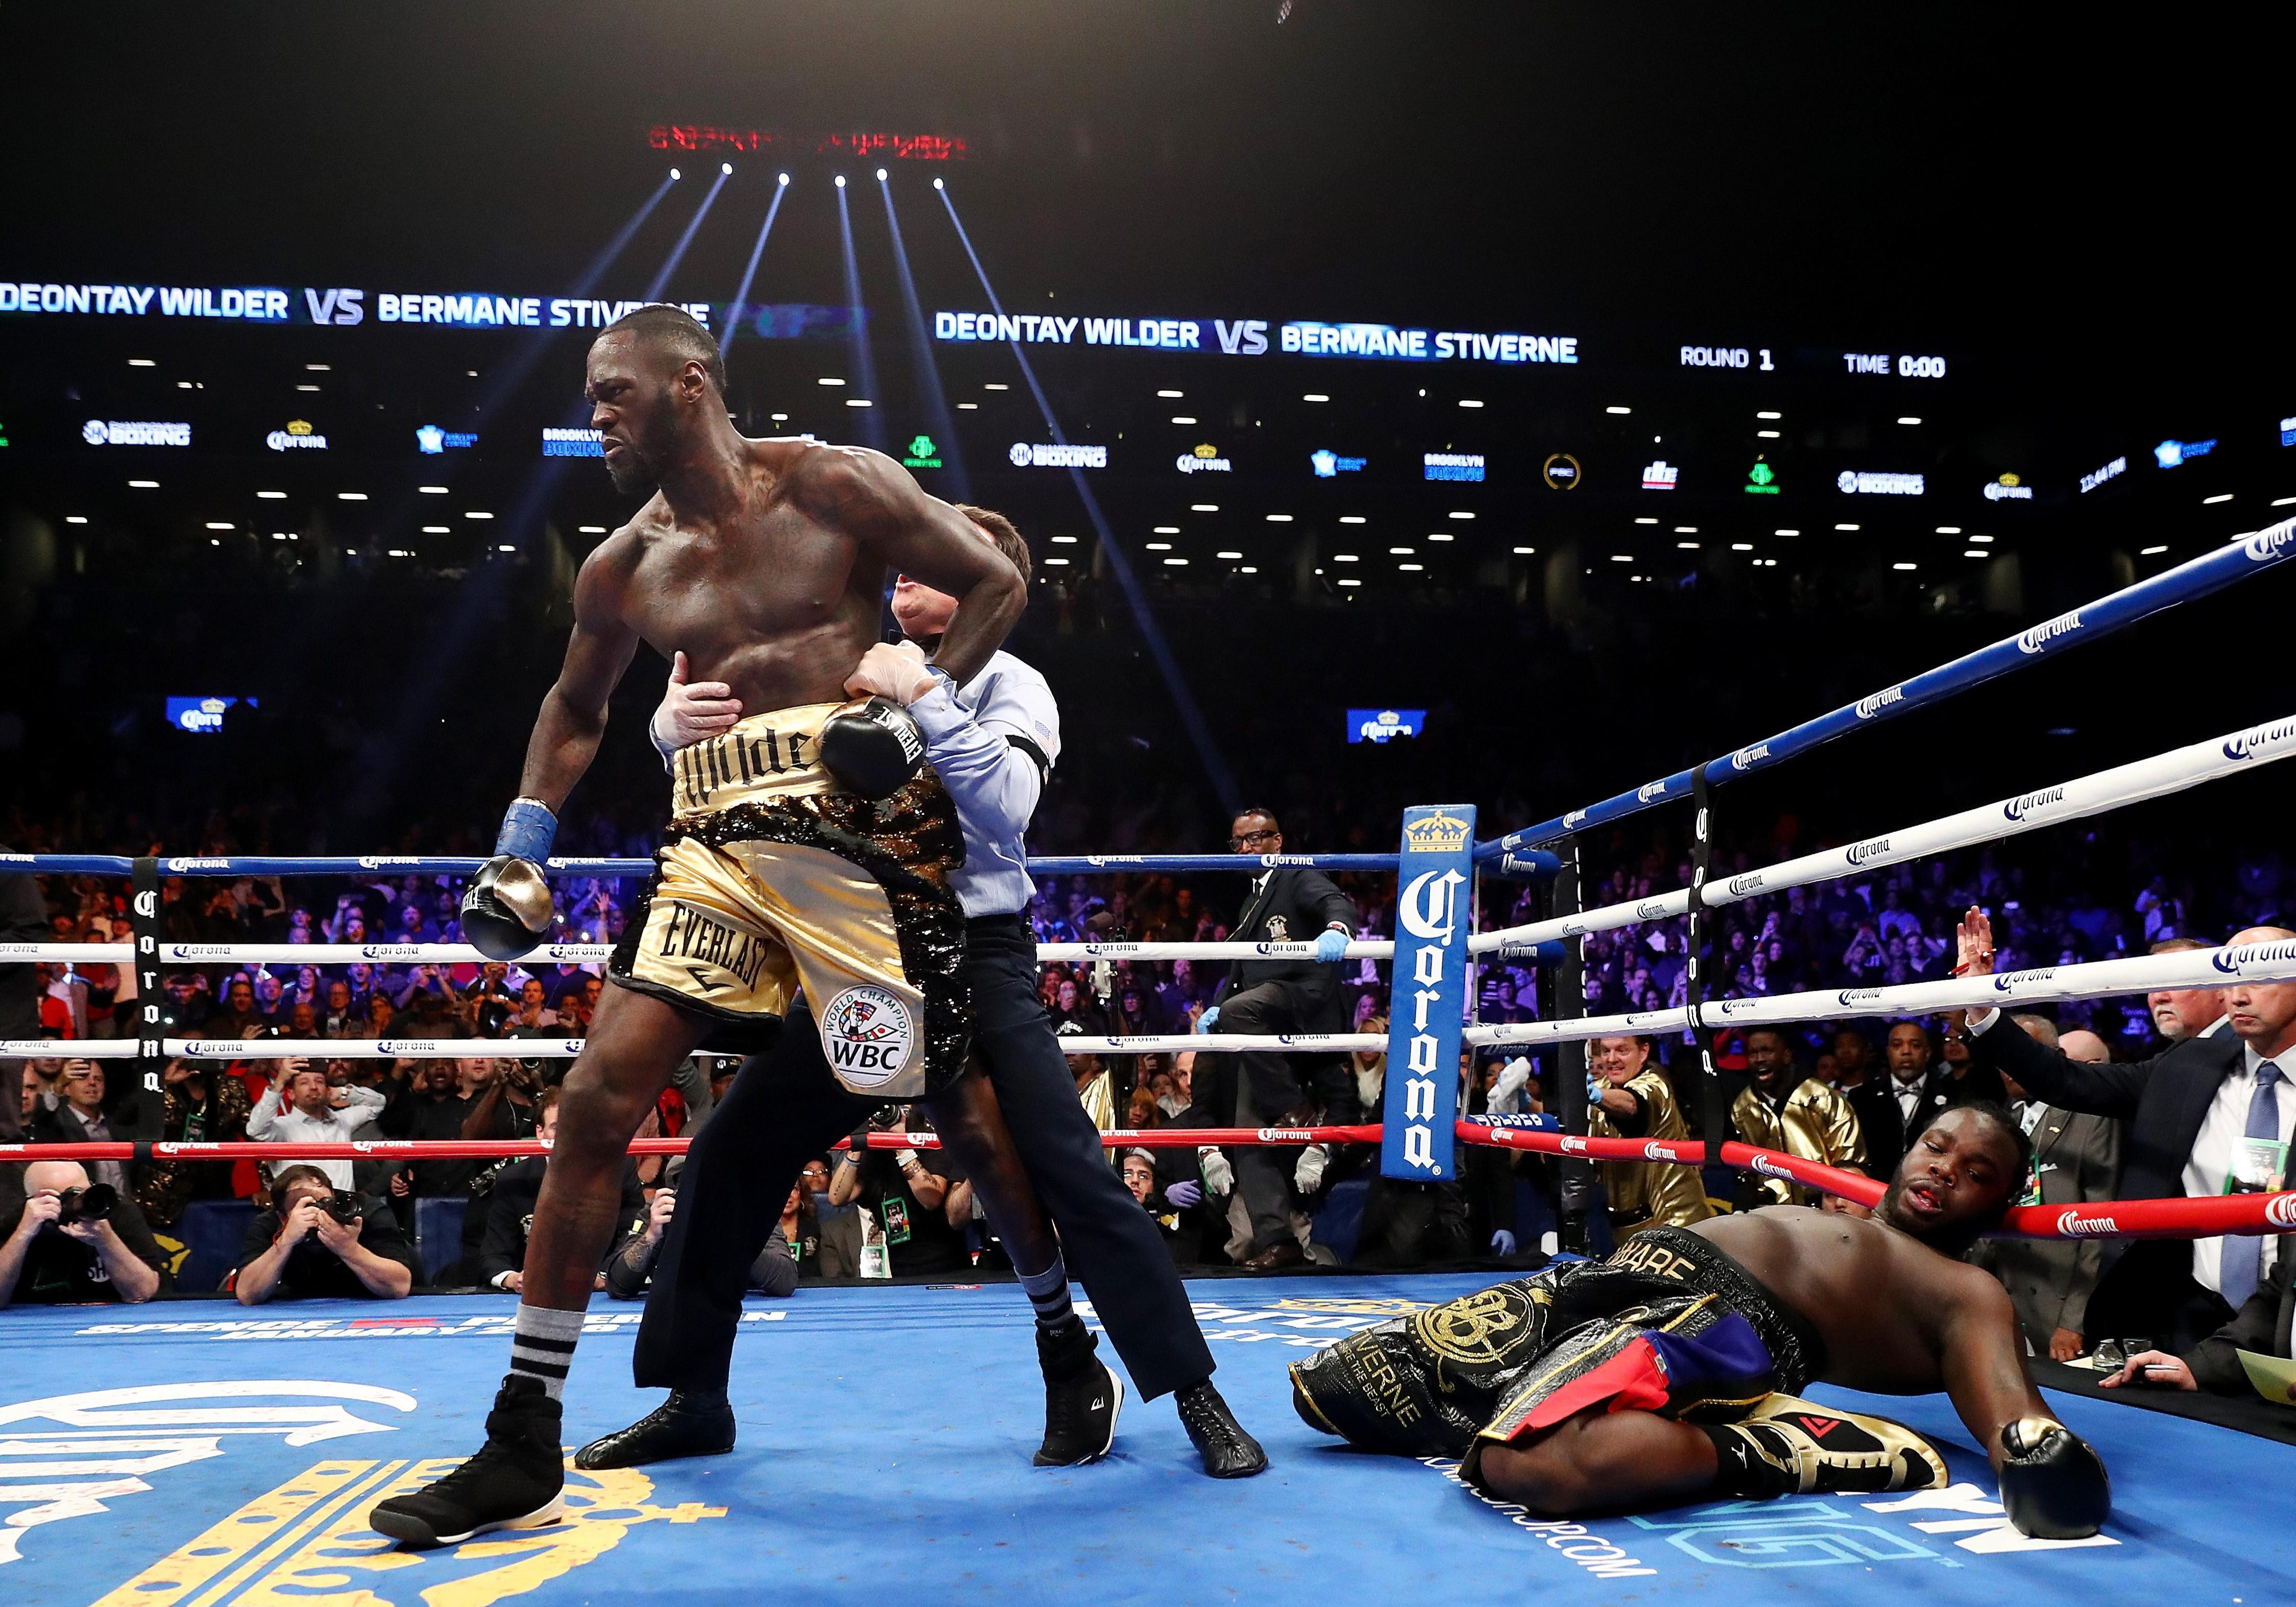 Deontay Wilder brutally knocked out Bermane Stiverne in his last outing inside a round